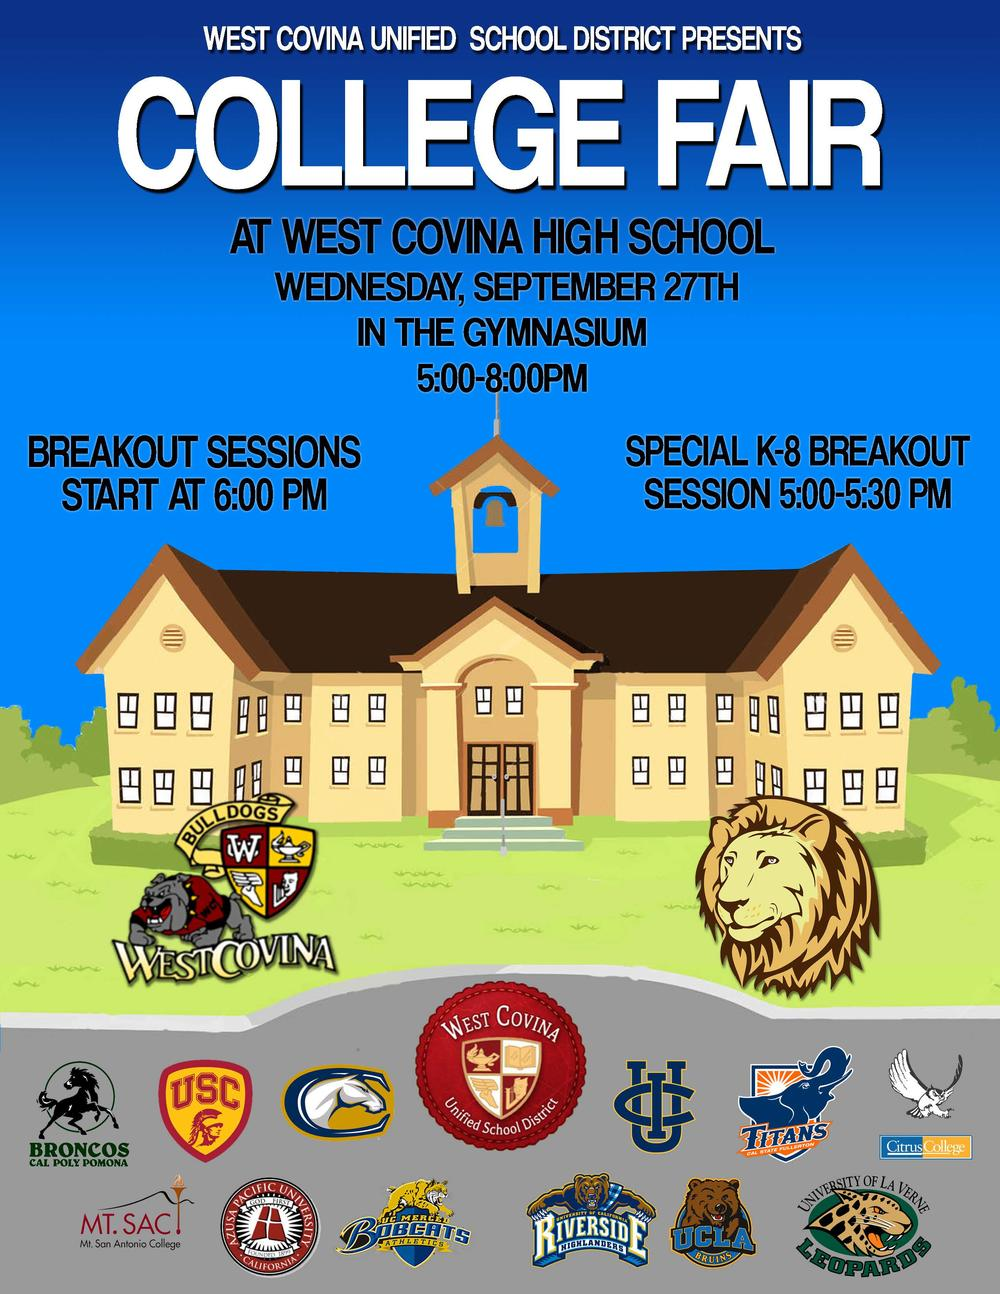 College fair at West Covina High School